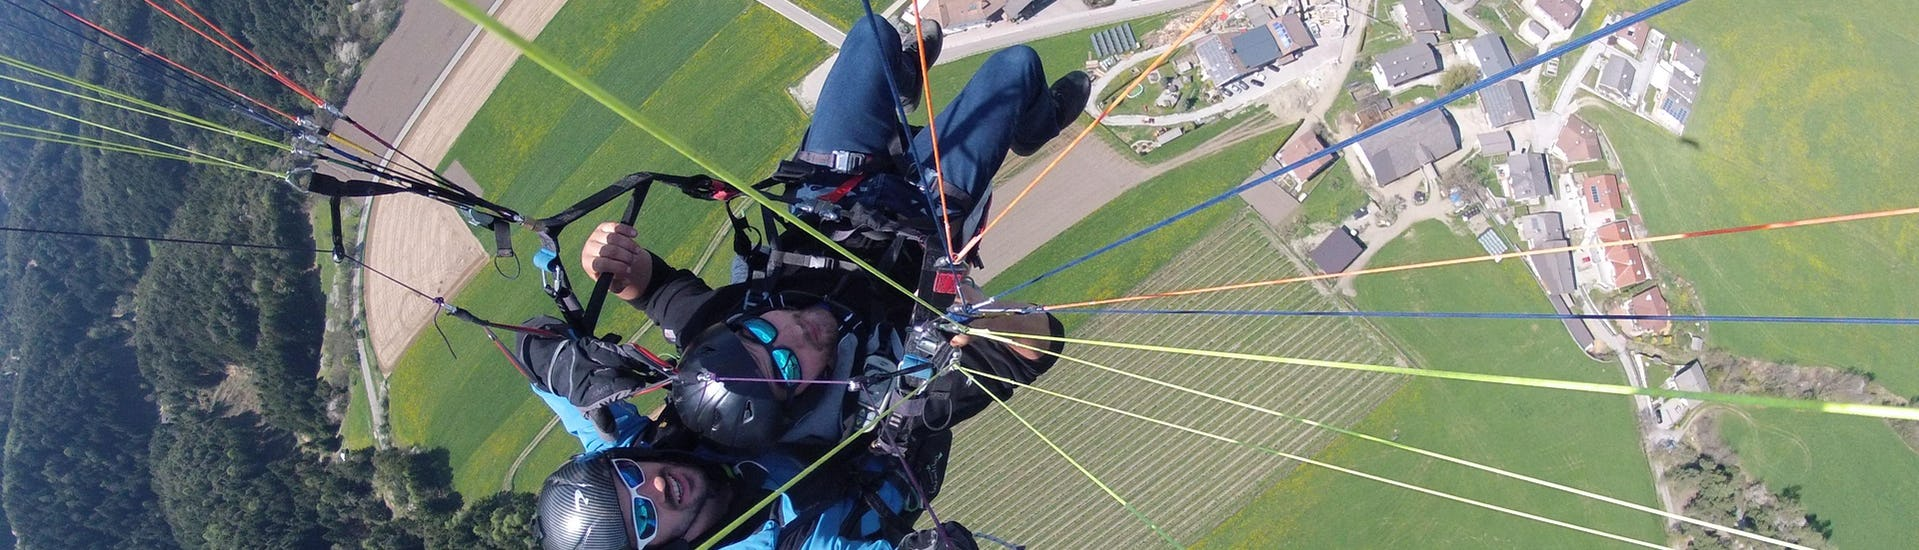 "Paragliding ""Thermic Flight"" - Plan de Corones or Mt. Cuzzo"